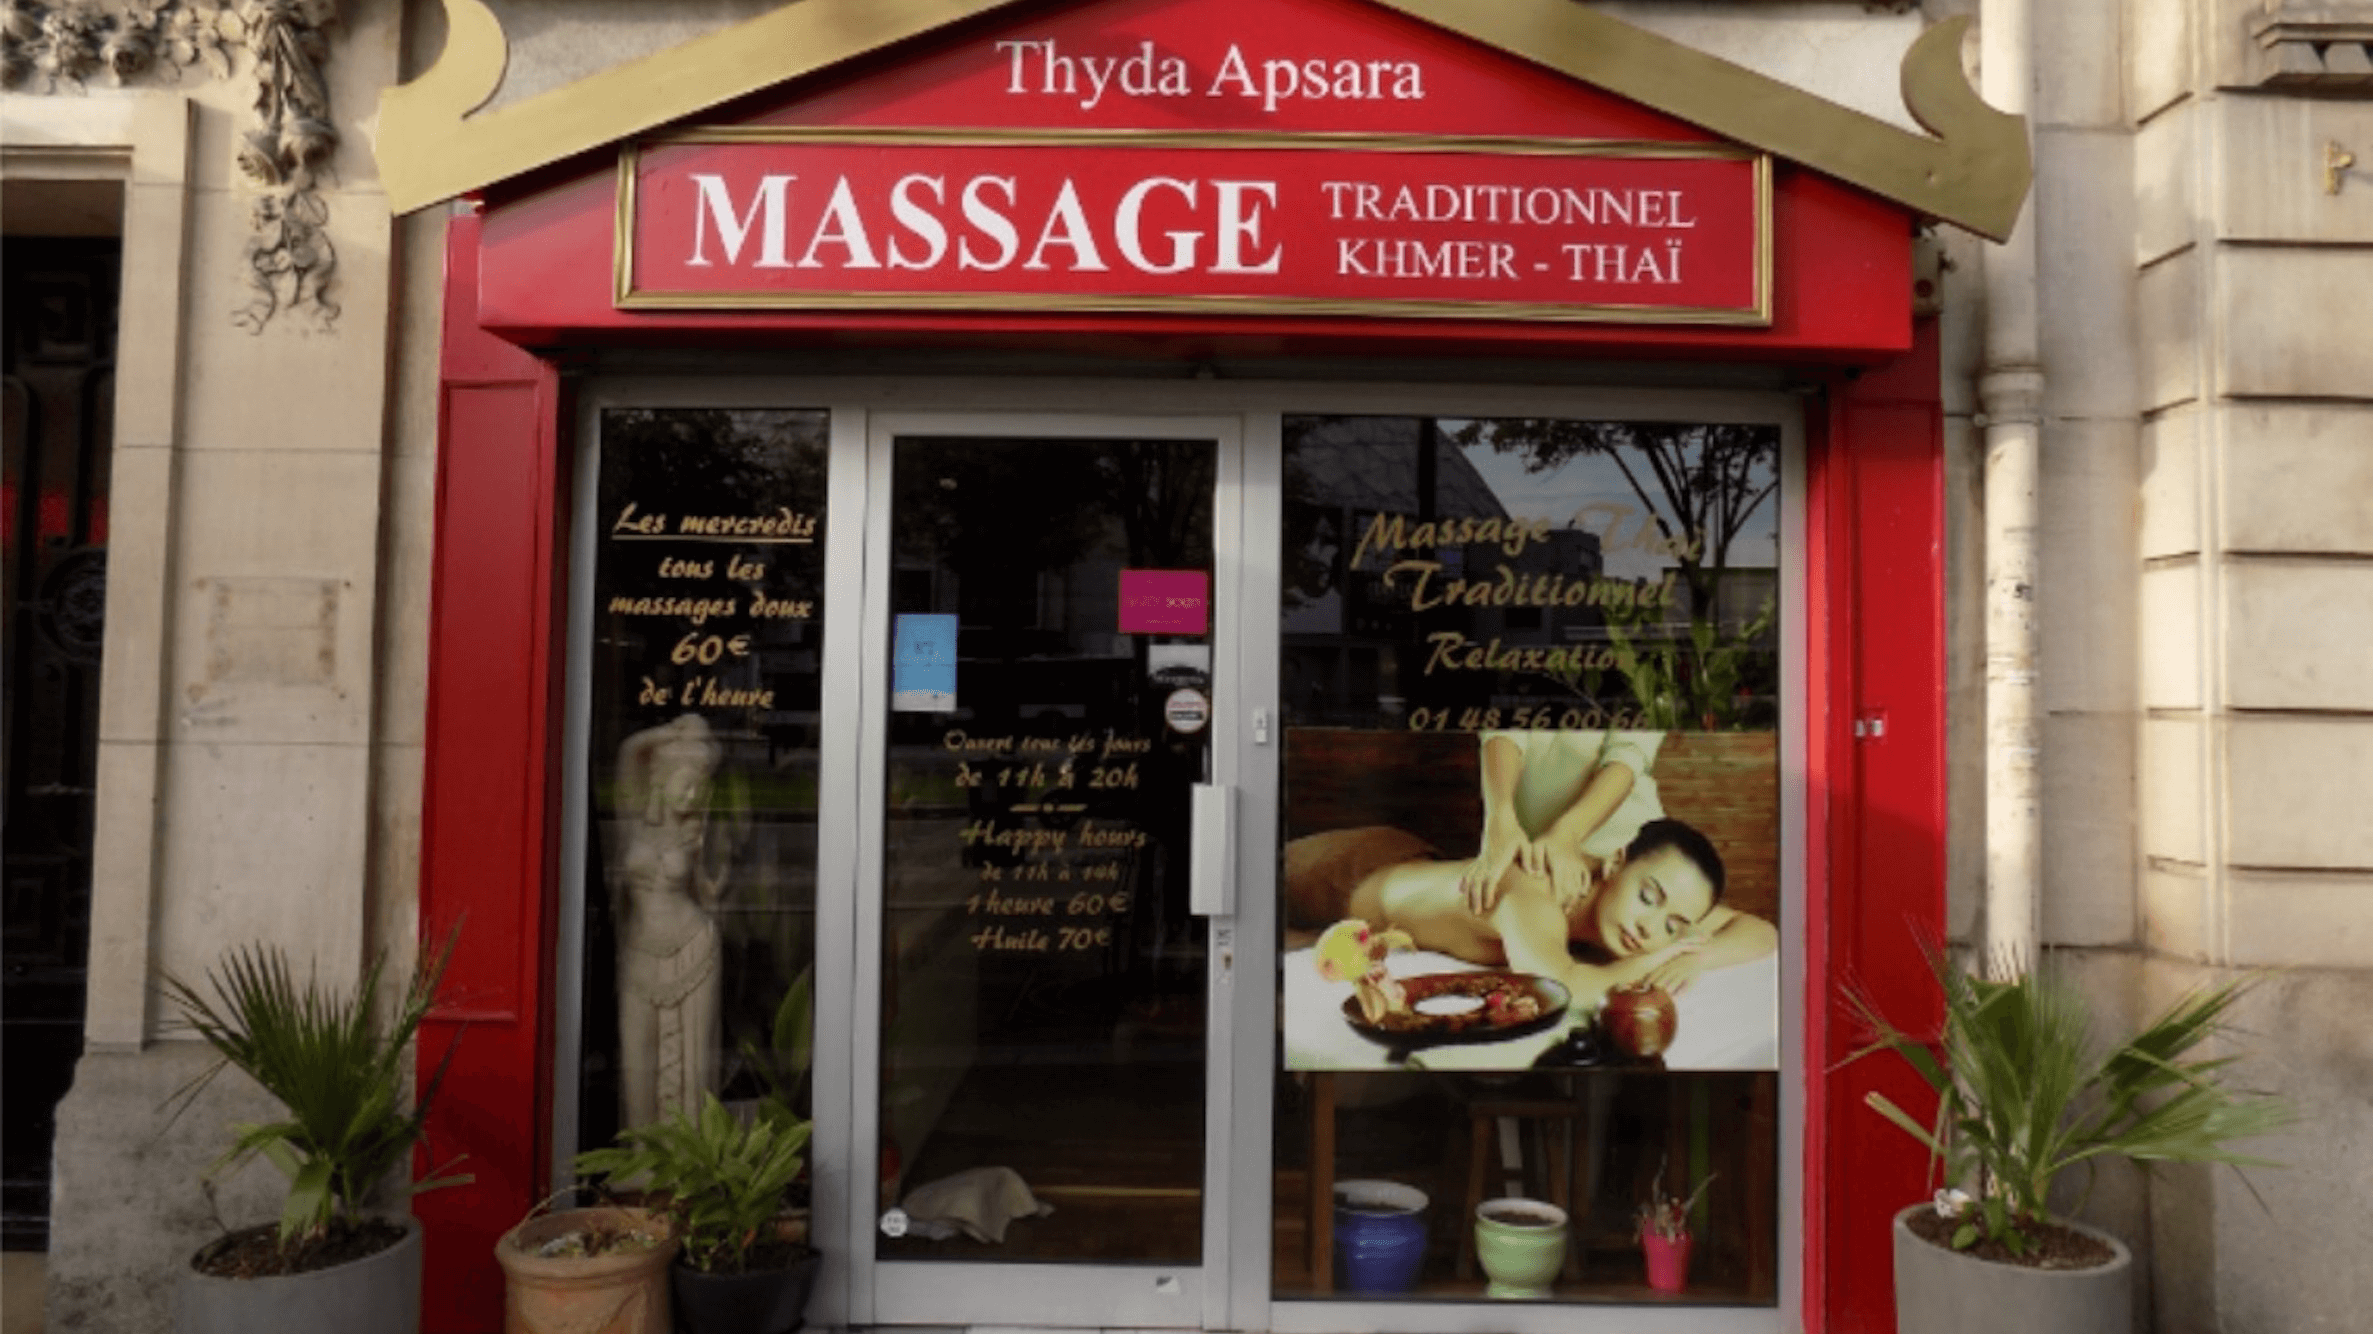 Thyda Apsara Massage